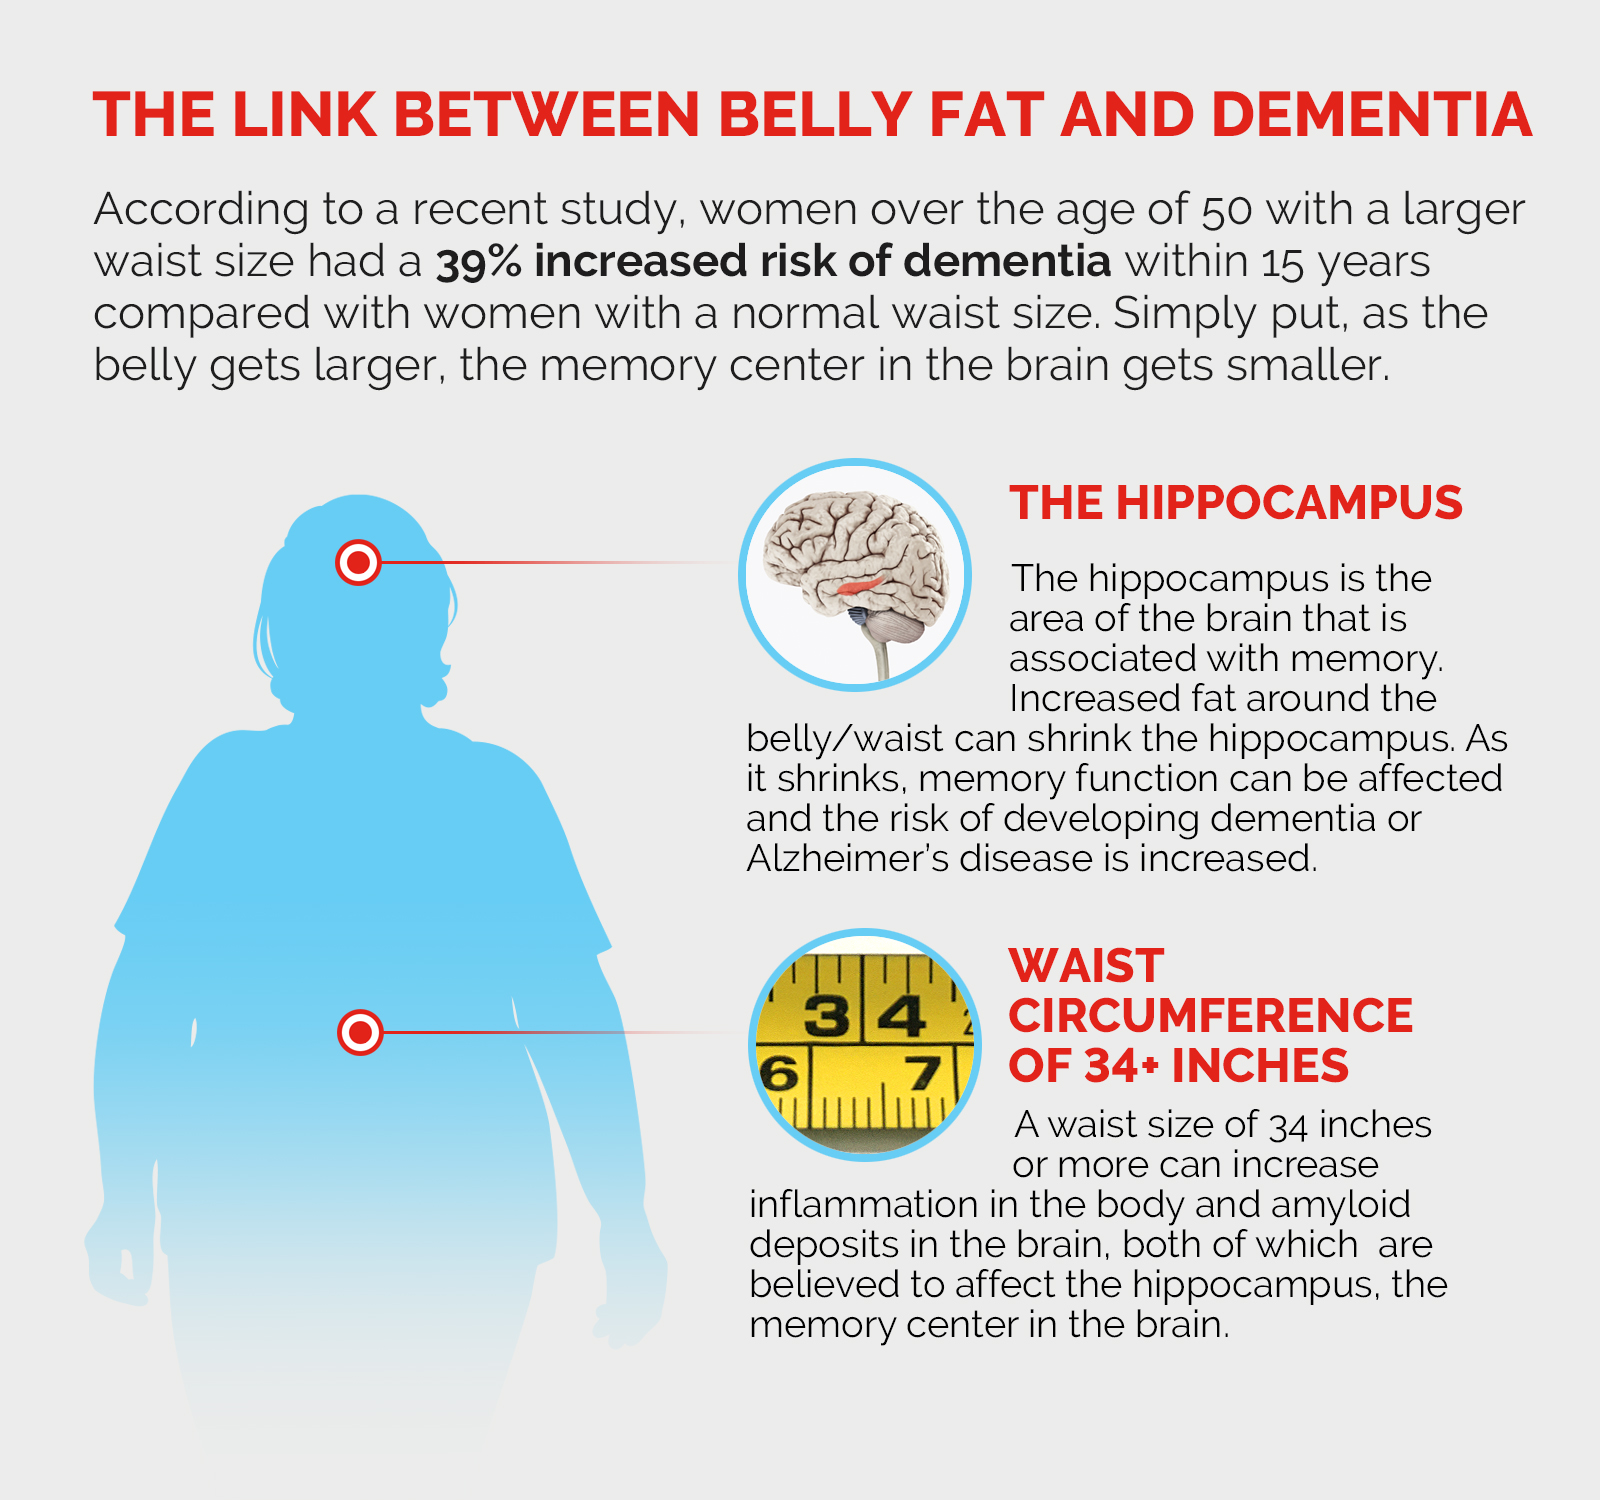 Infographic showing the relationship between obesity and dementia.